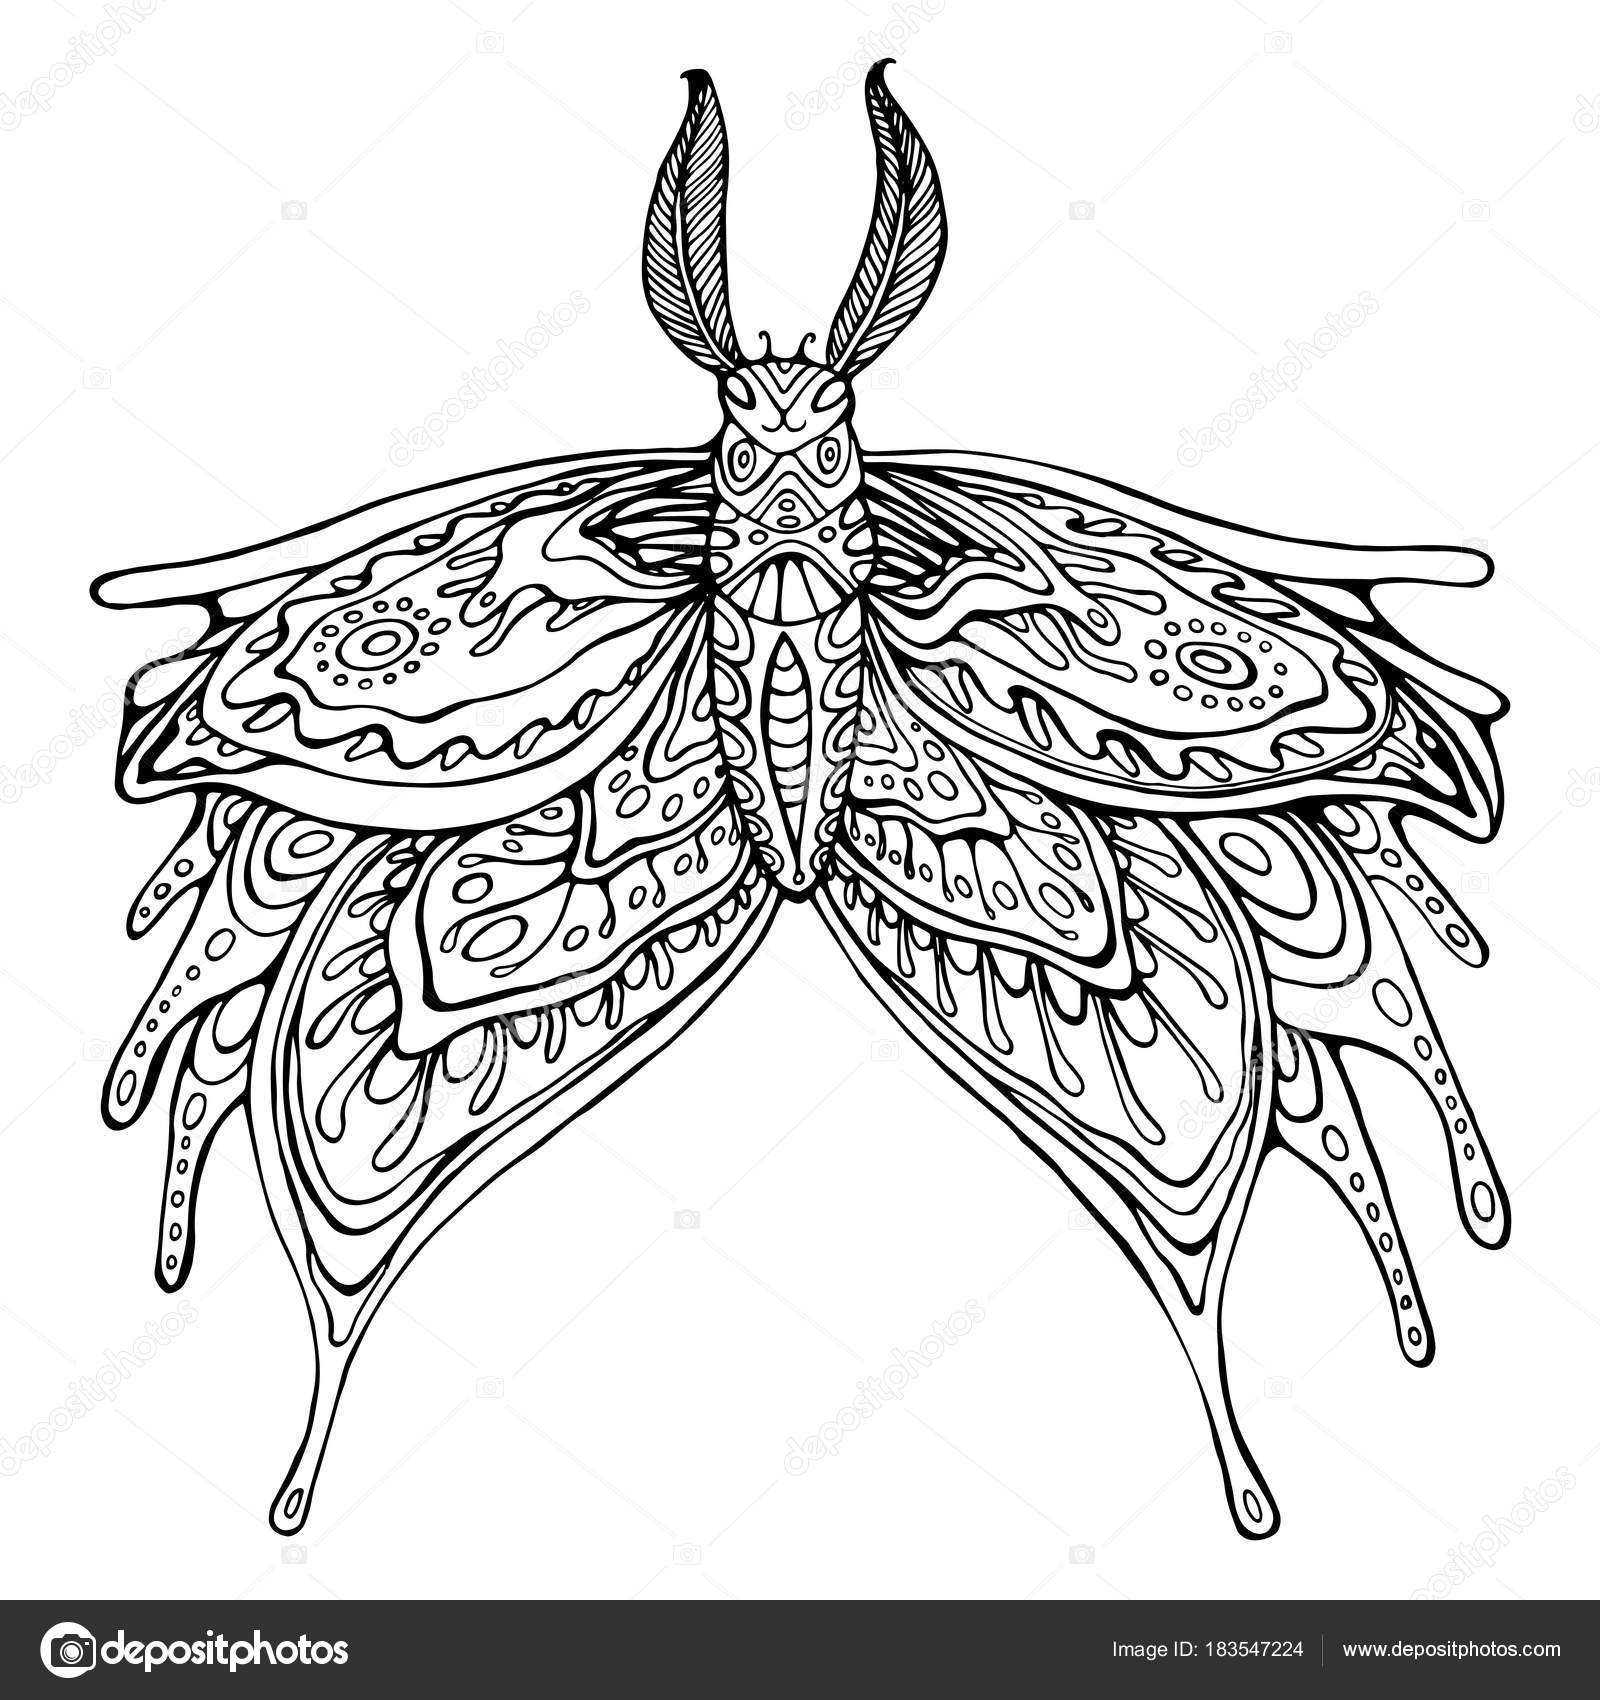 butterfly coloring page for children and adults stock vector